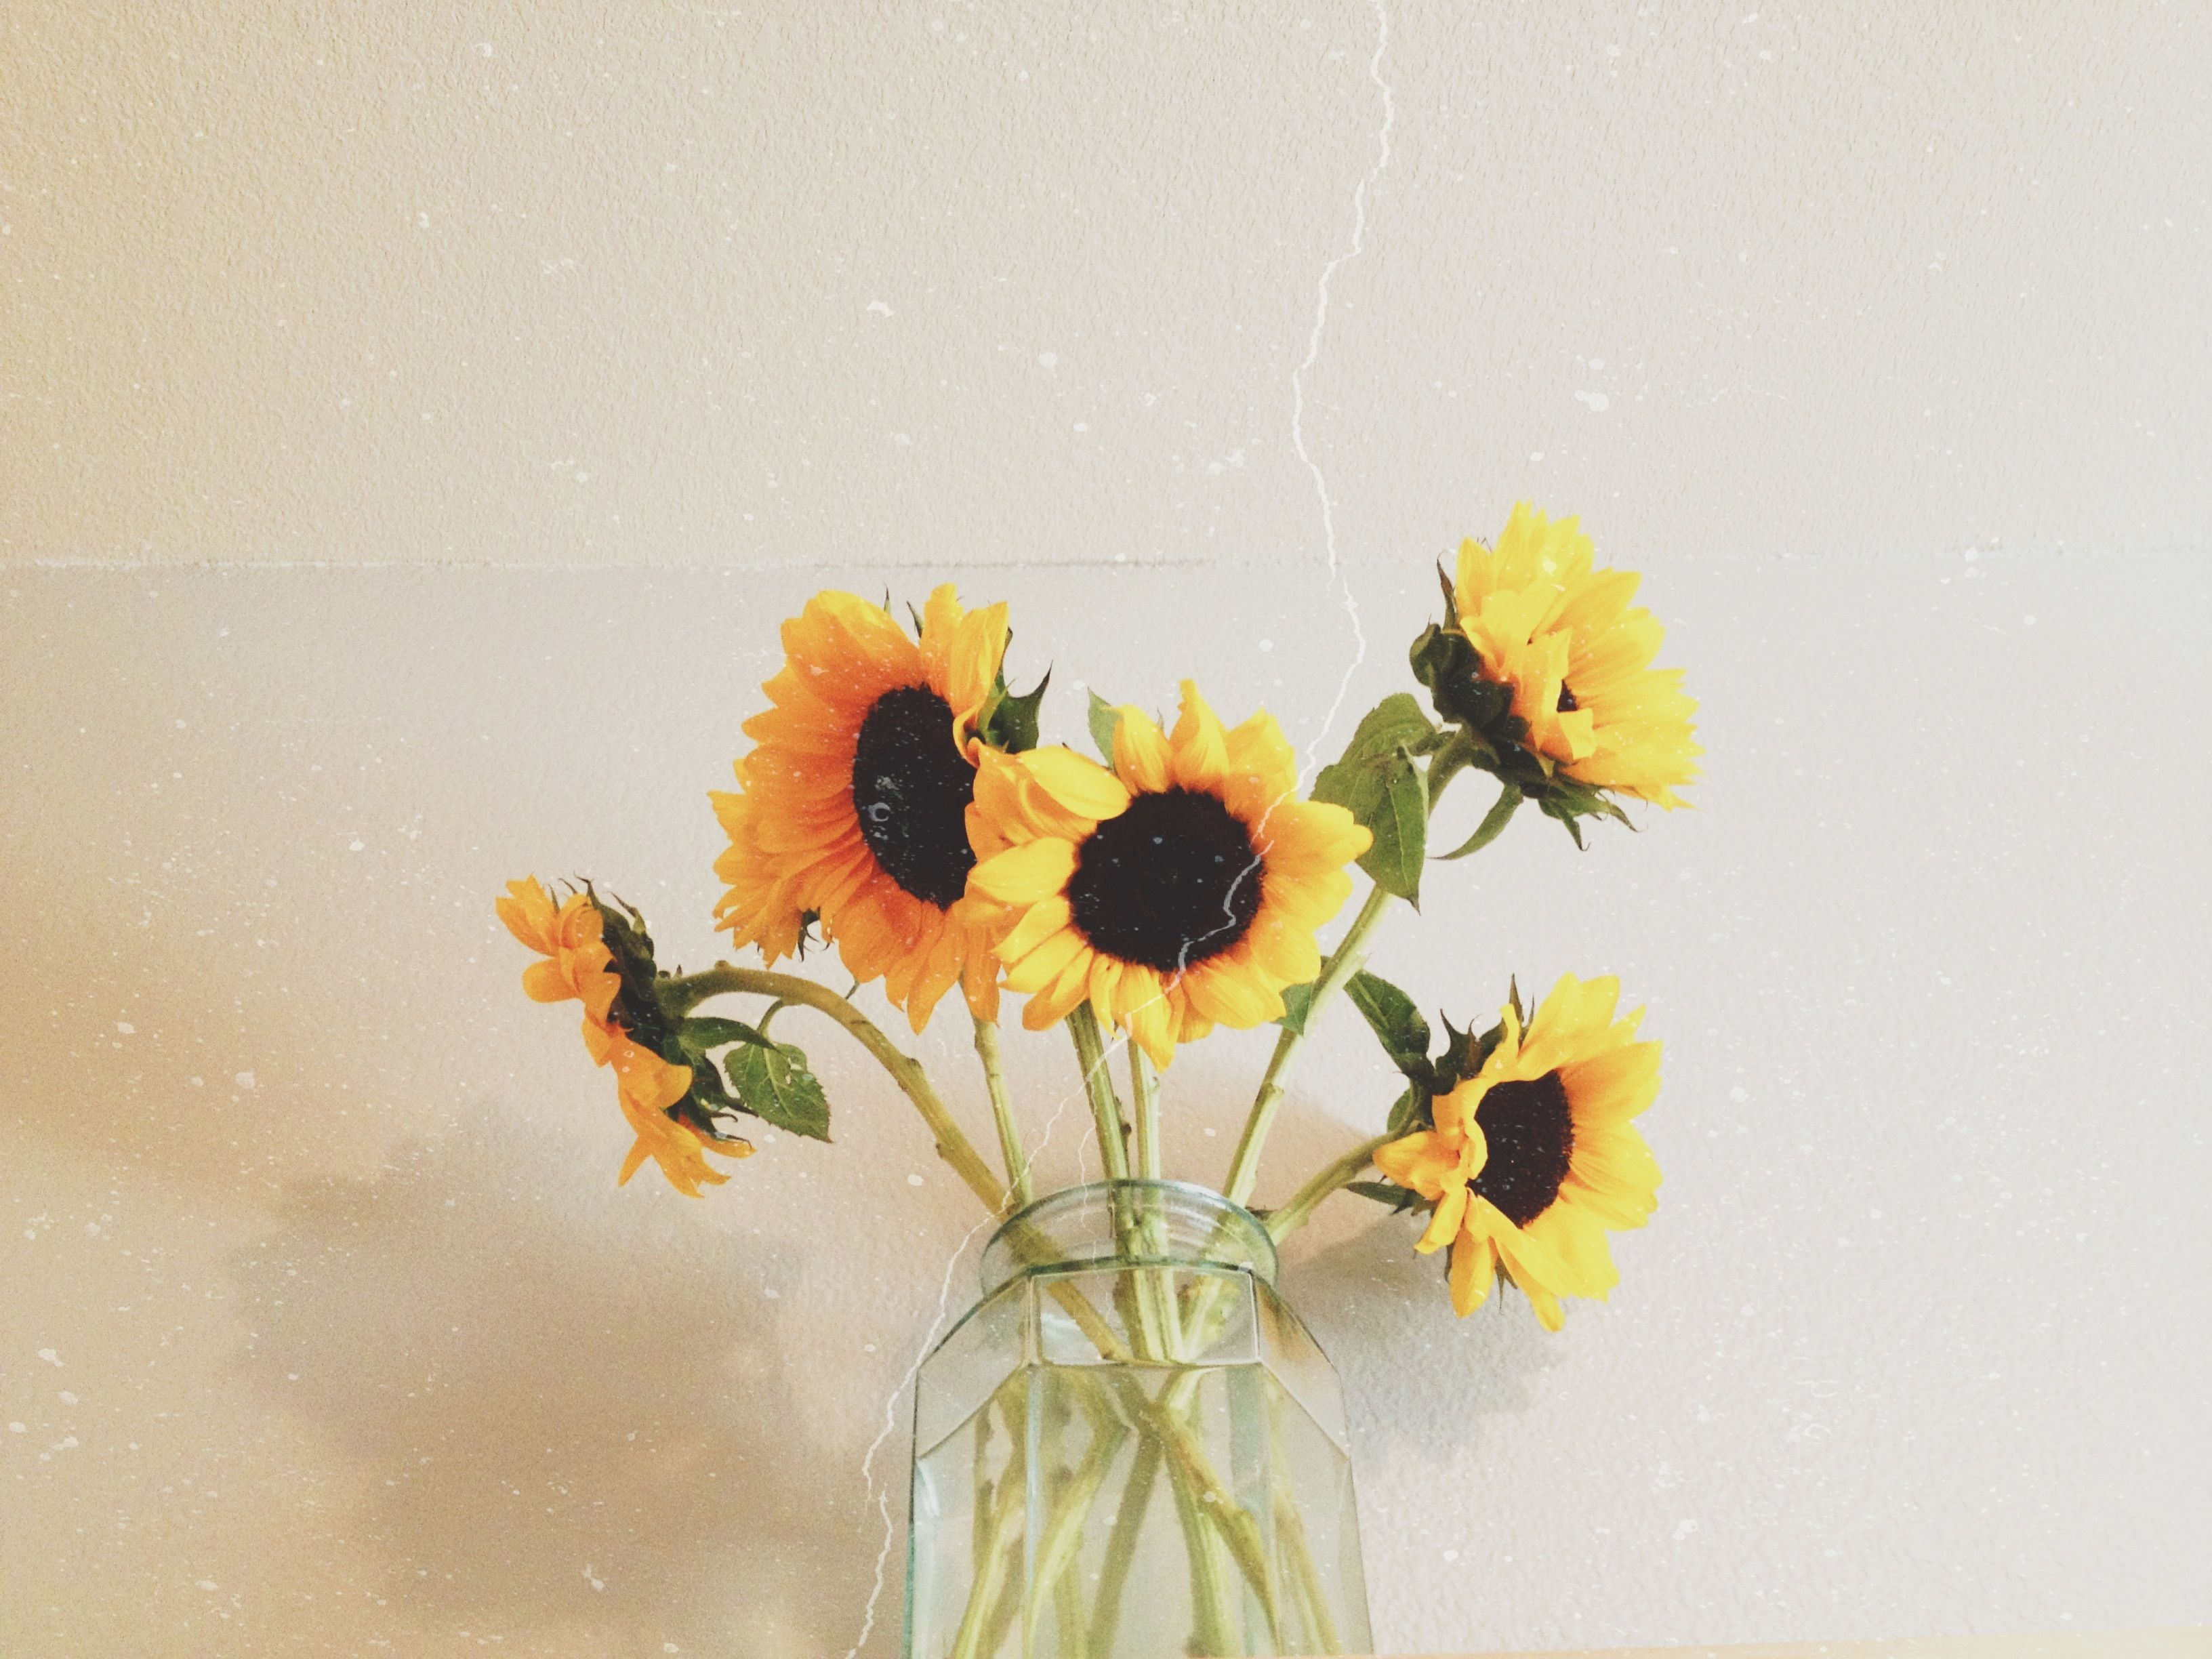 28 Simple Ways To Everyday Happiness Bloom Love Flowers